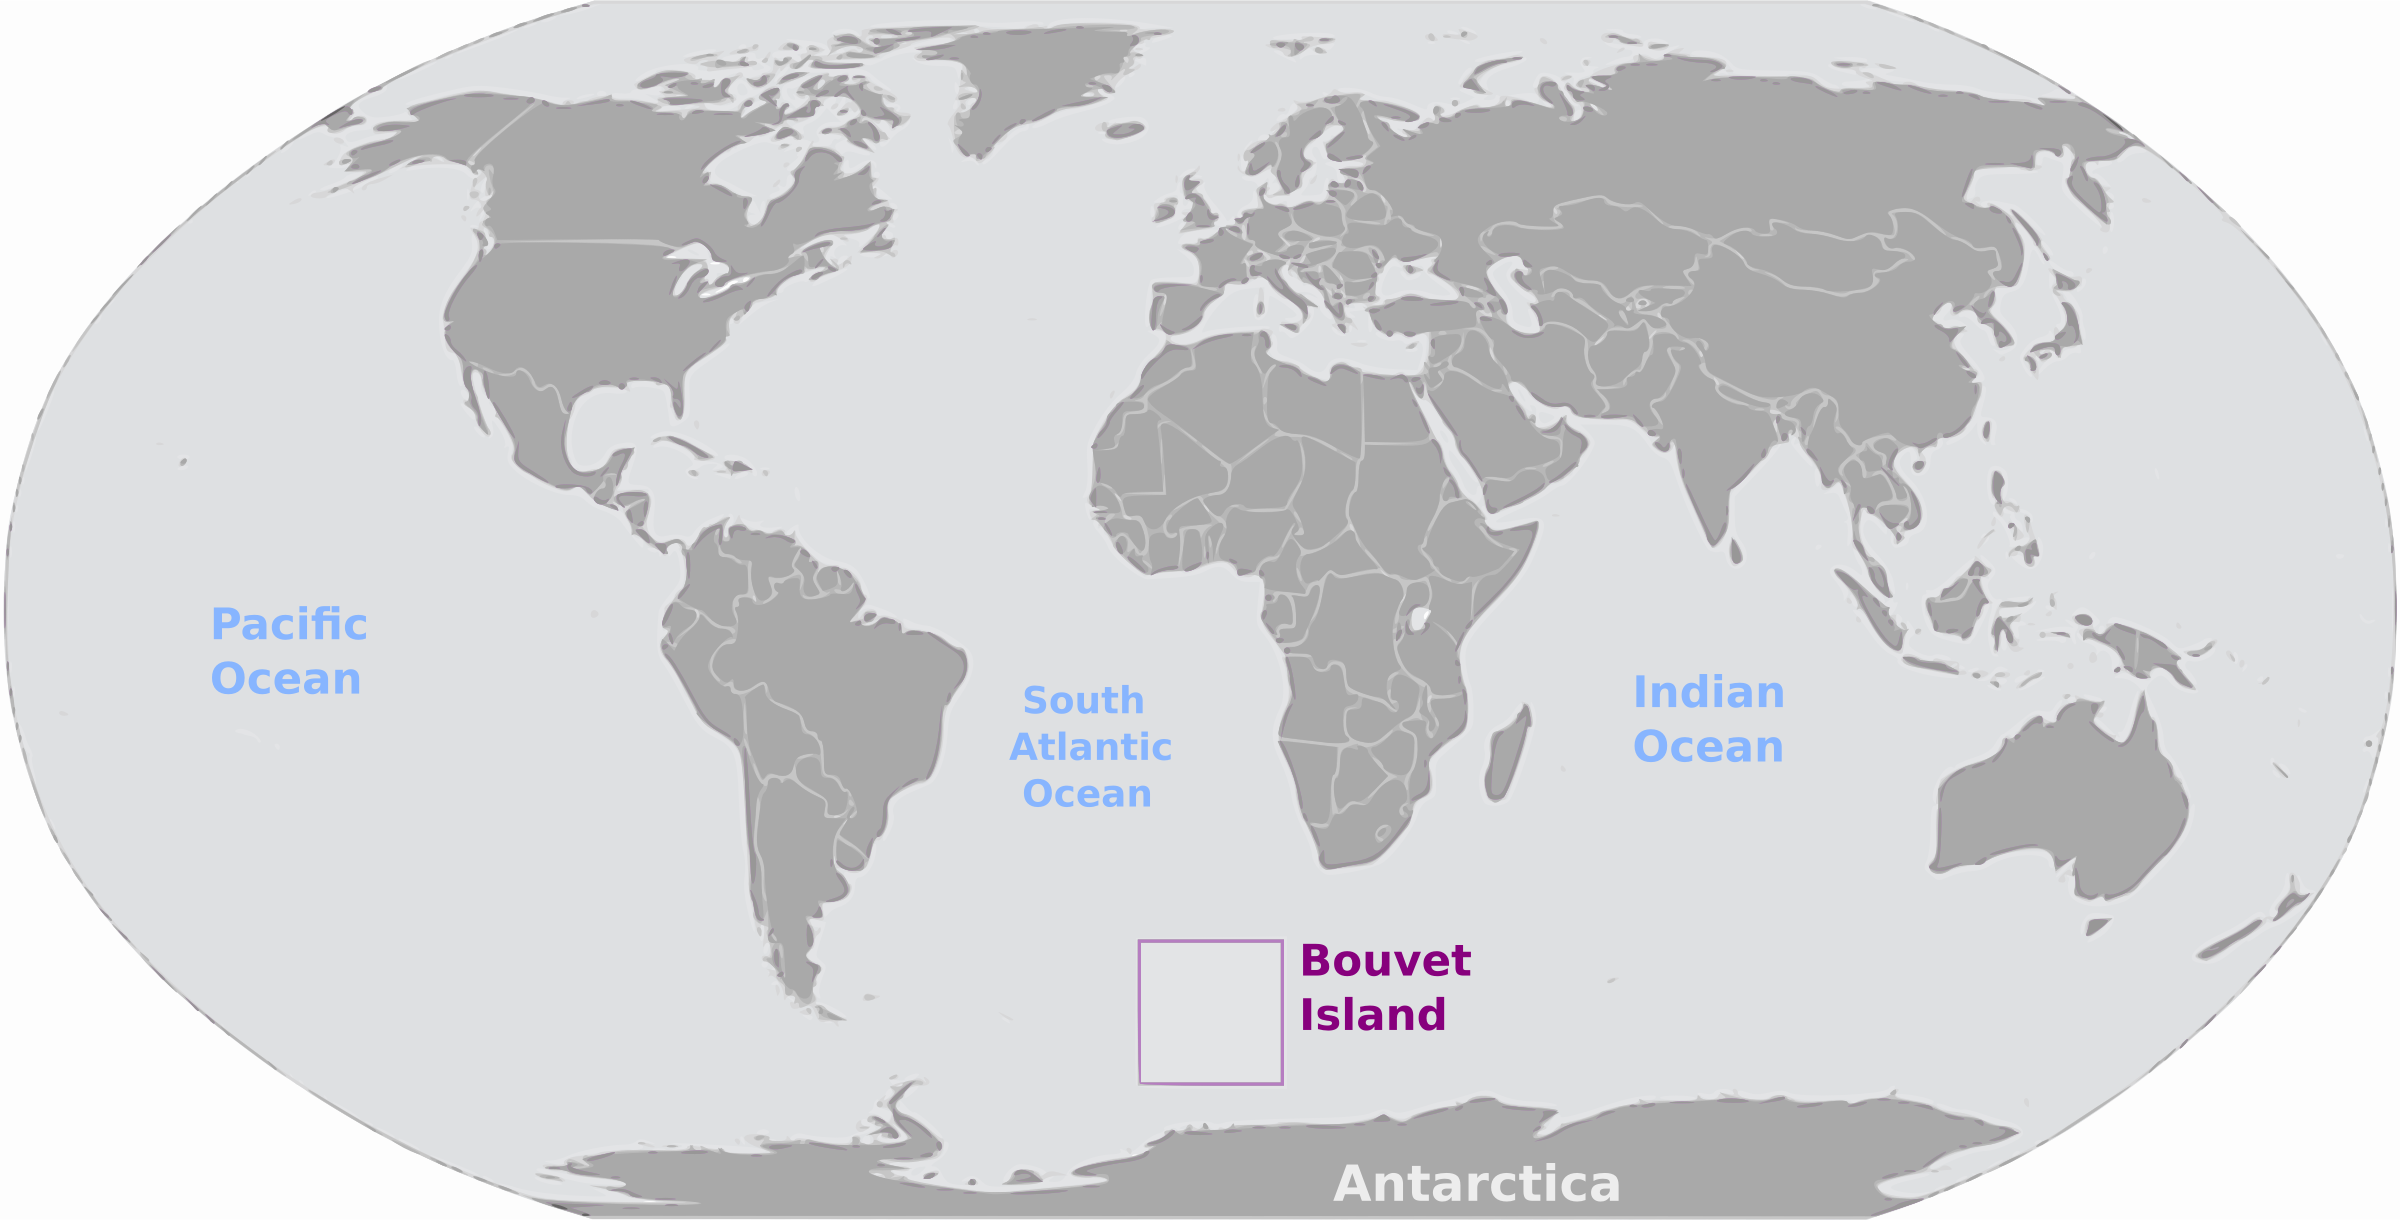 Bouvet Island location label by wpclipart